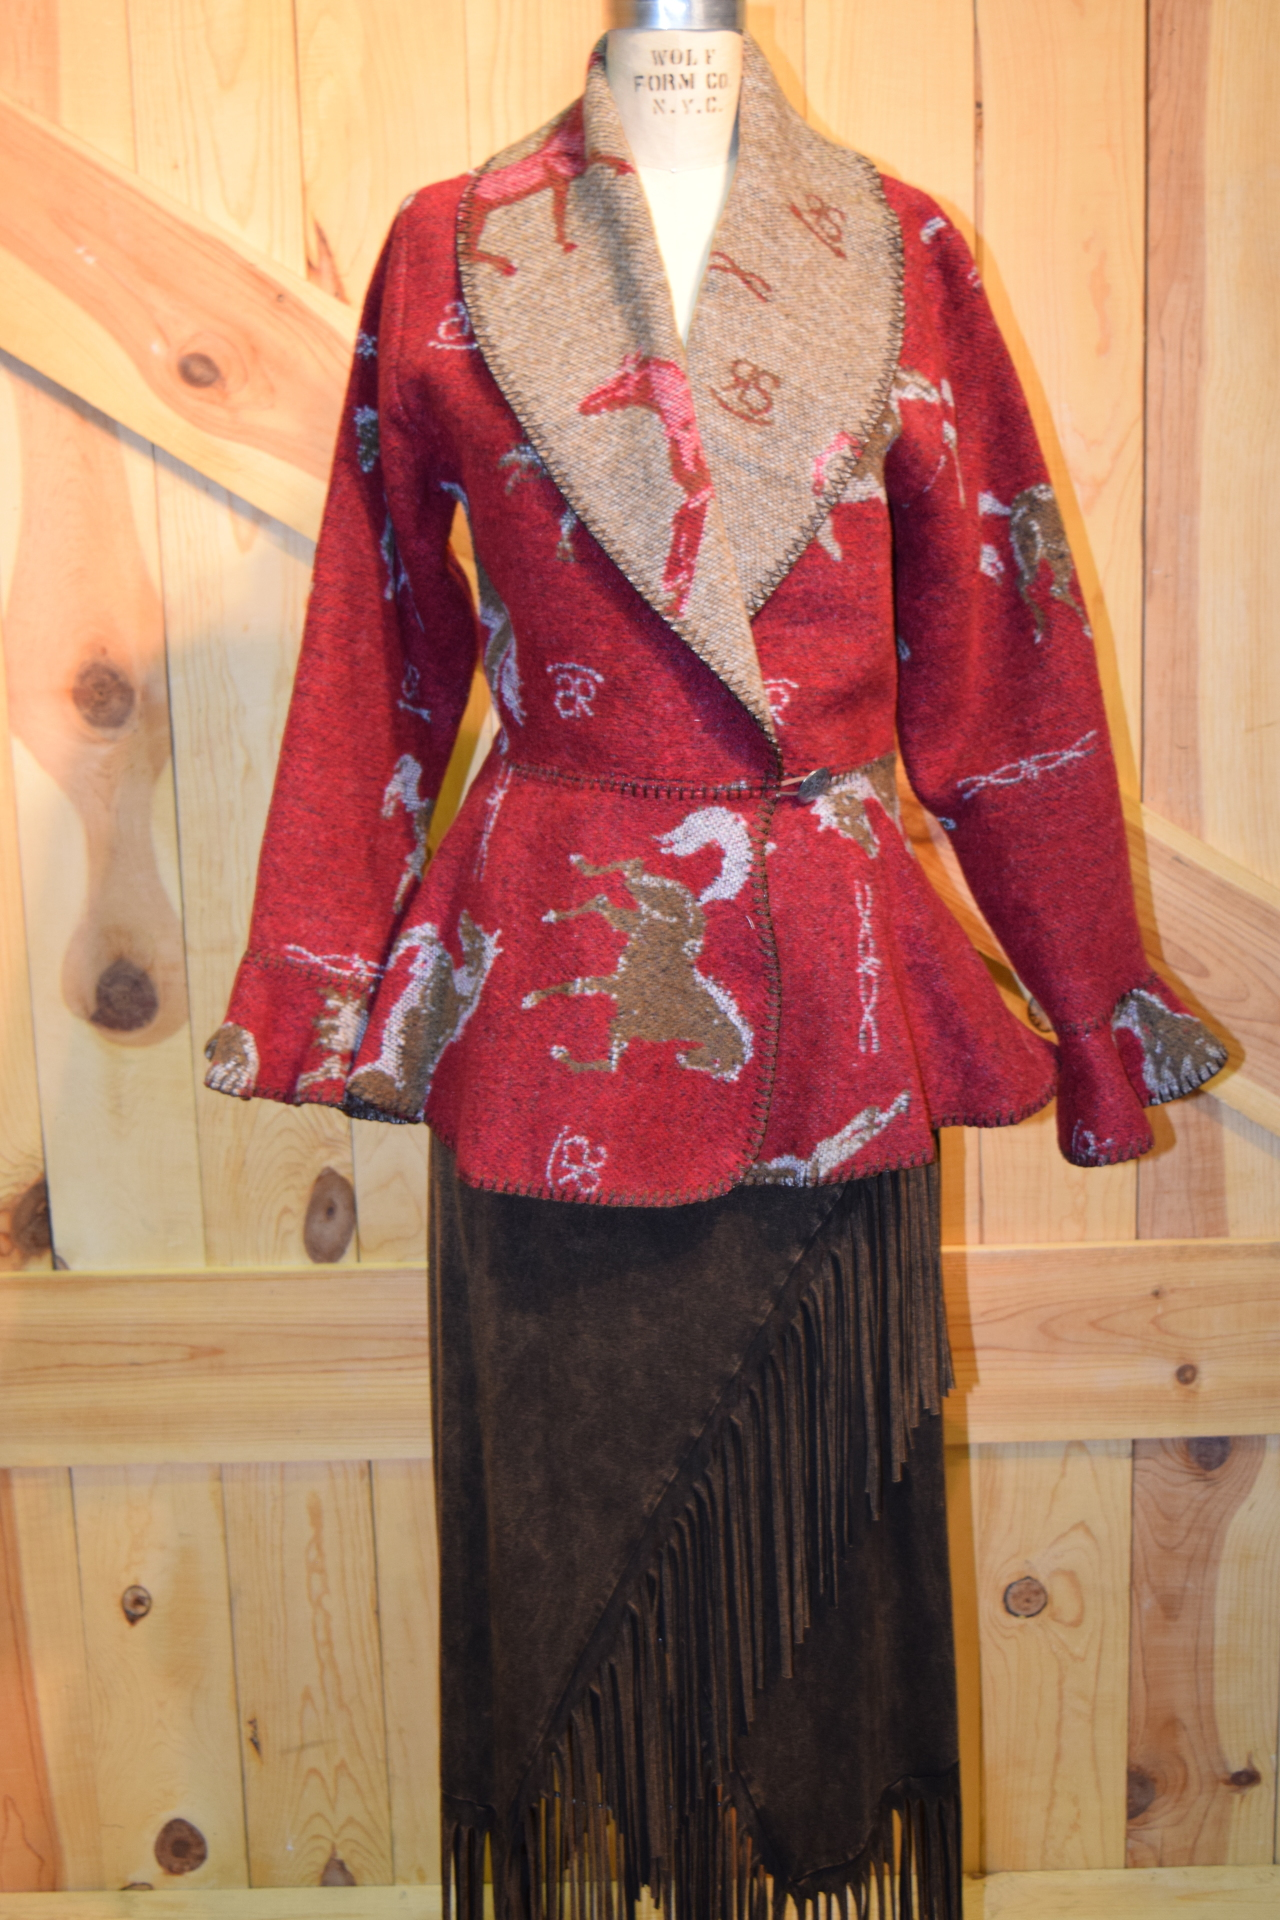 #845HBR - RED HORSE BRANDS FLOUNCE JACKET - $199.95